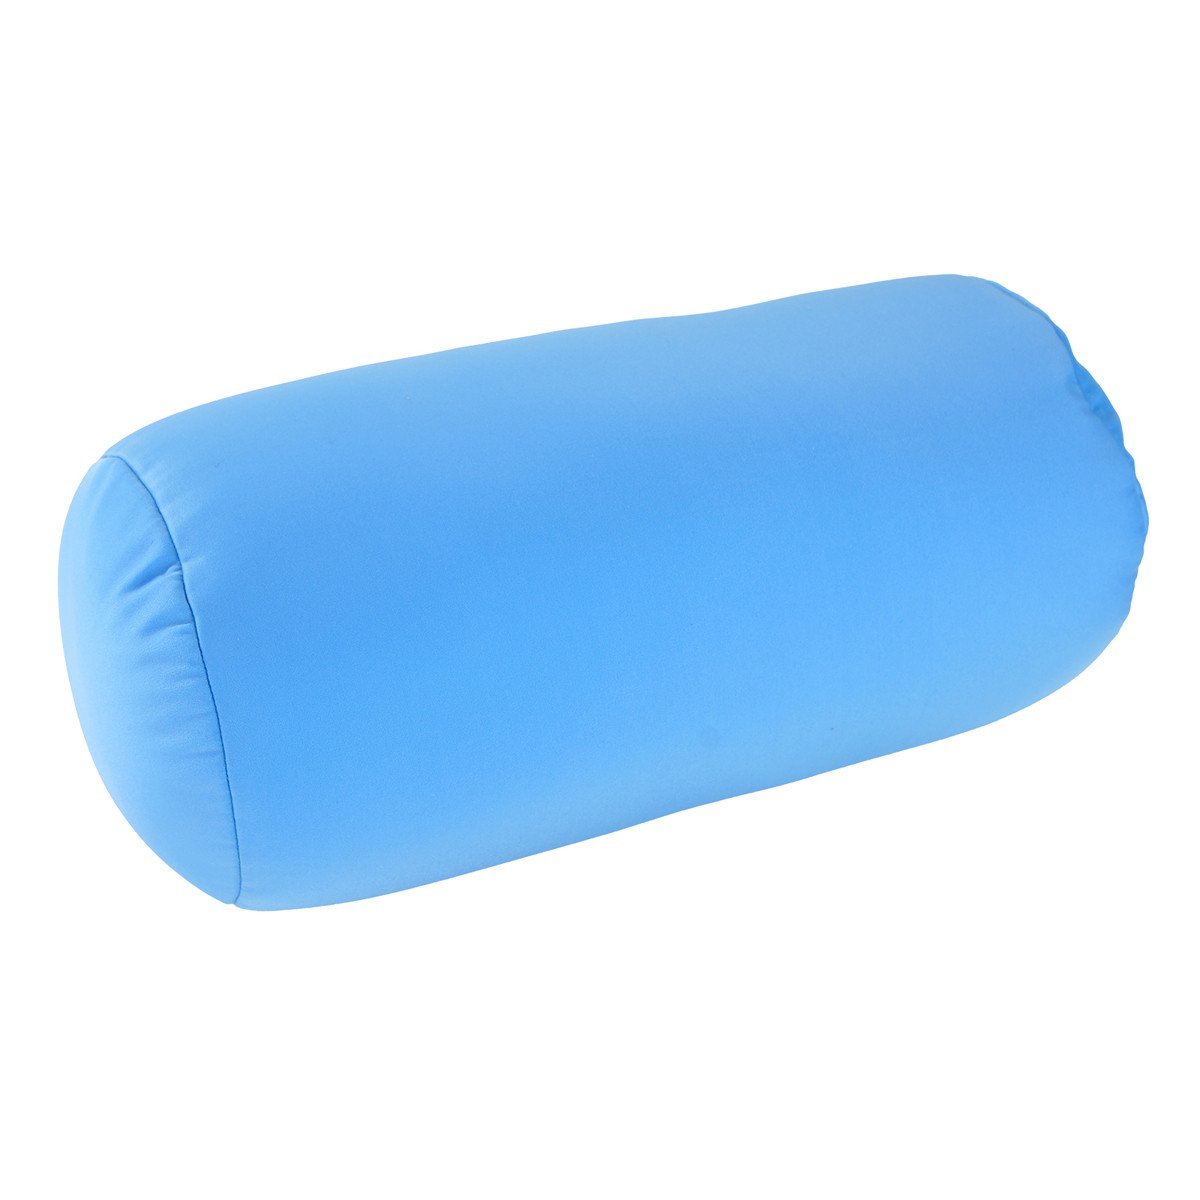 Squishy Deluxe Microbead Bolster Pillow with Removable Cover-Sky Blue